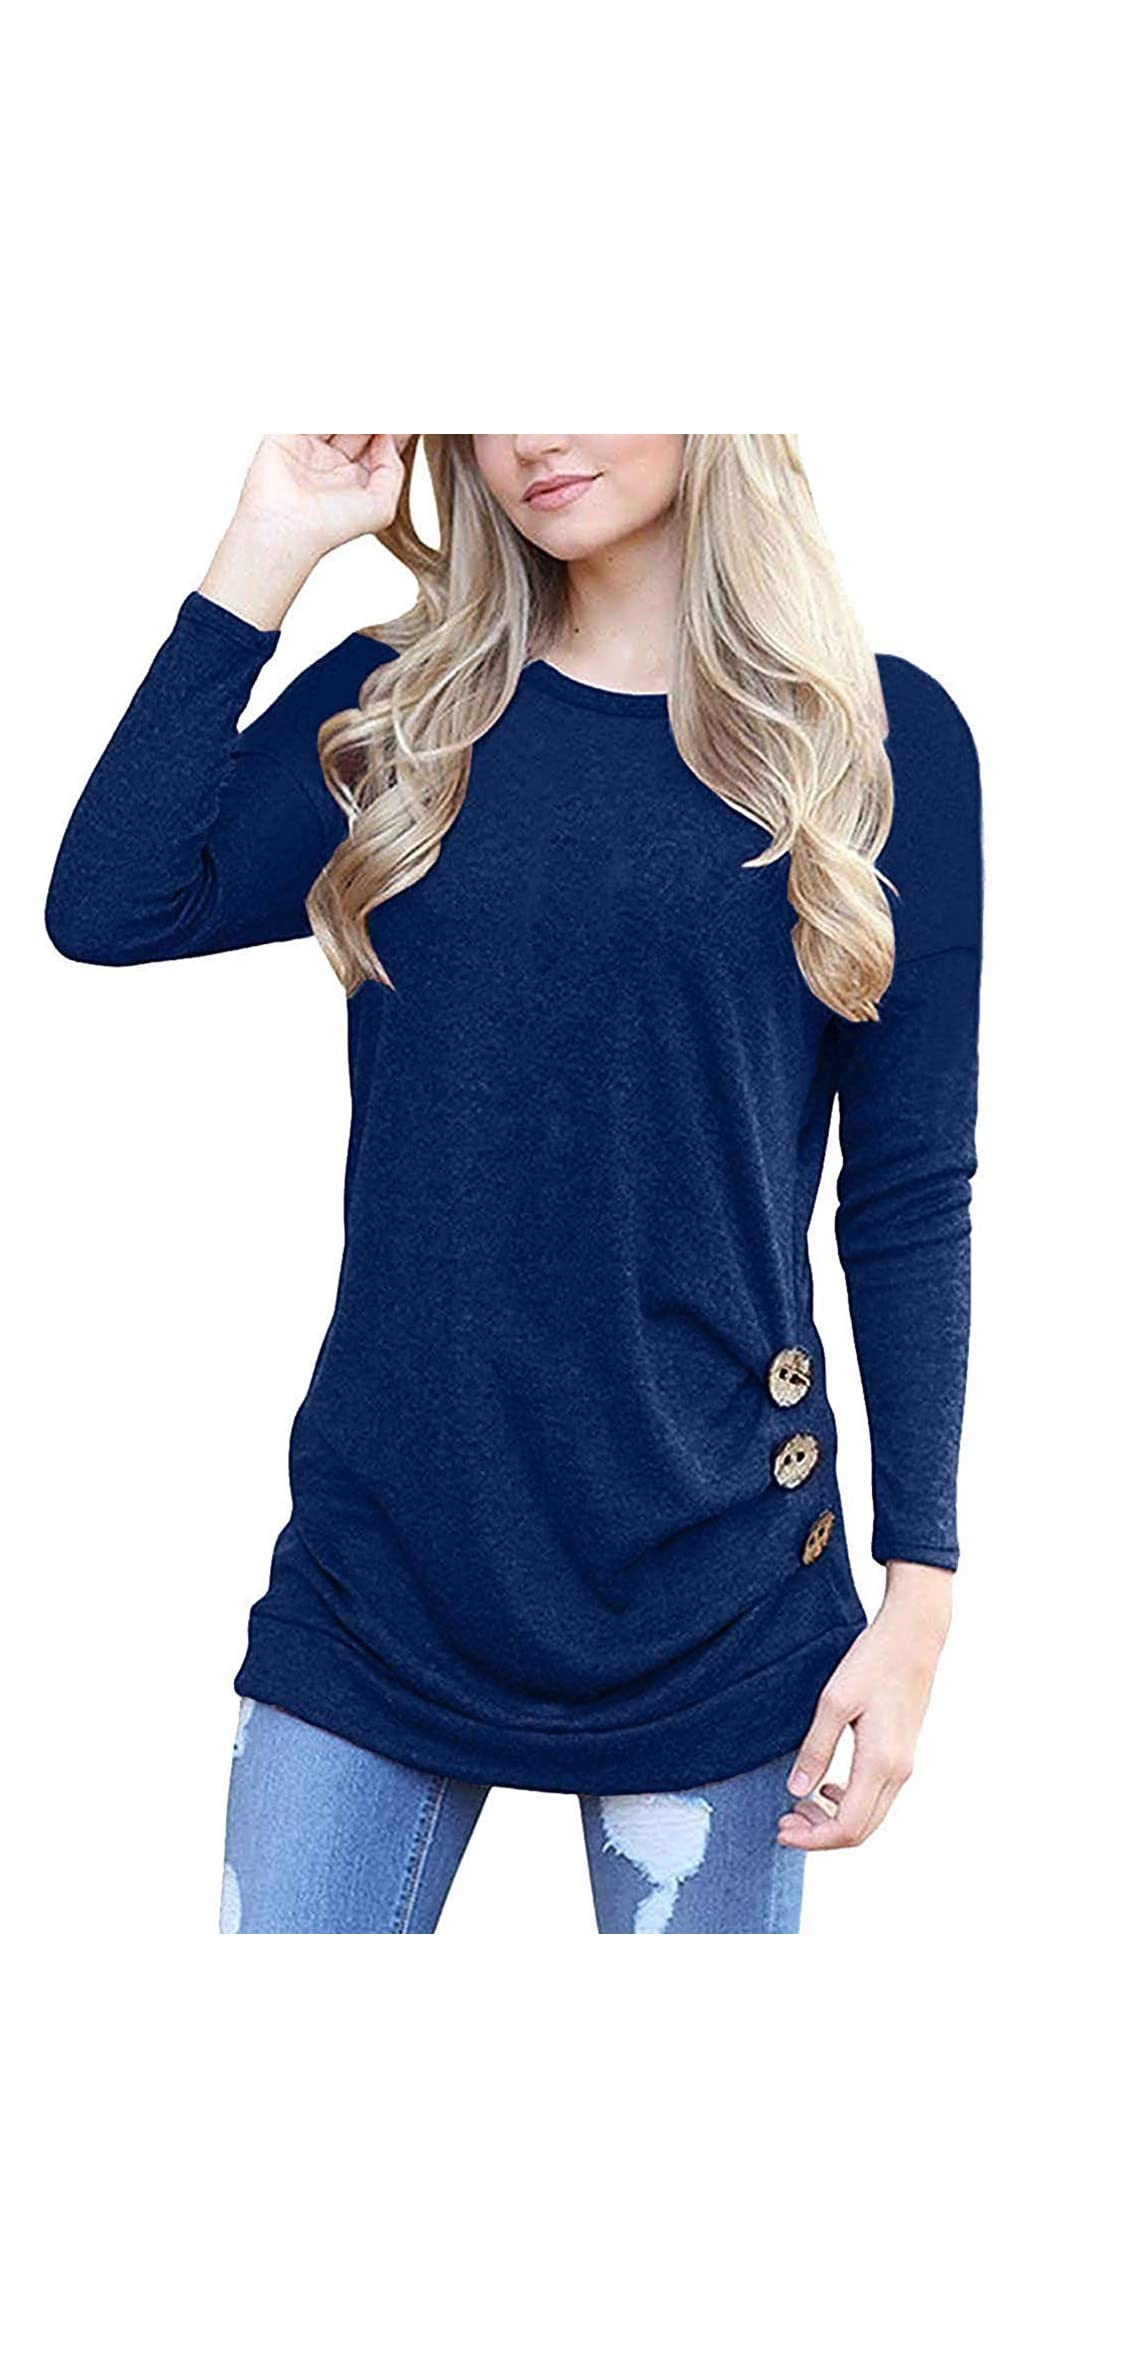 Women's Casual Long Sleeve Round Neck Loose Tunic T